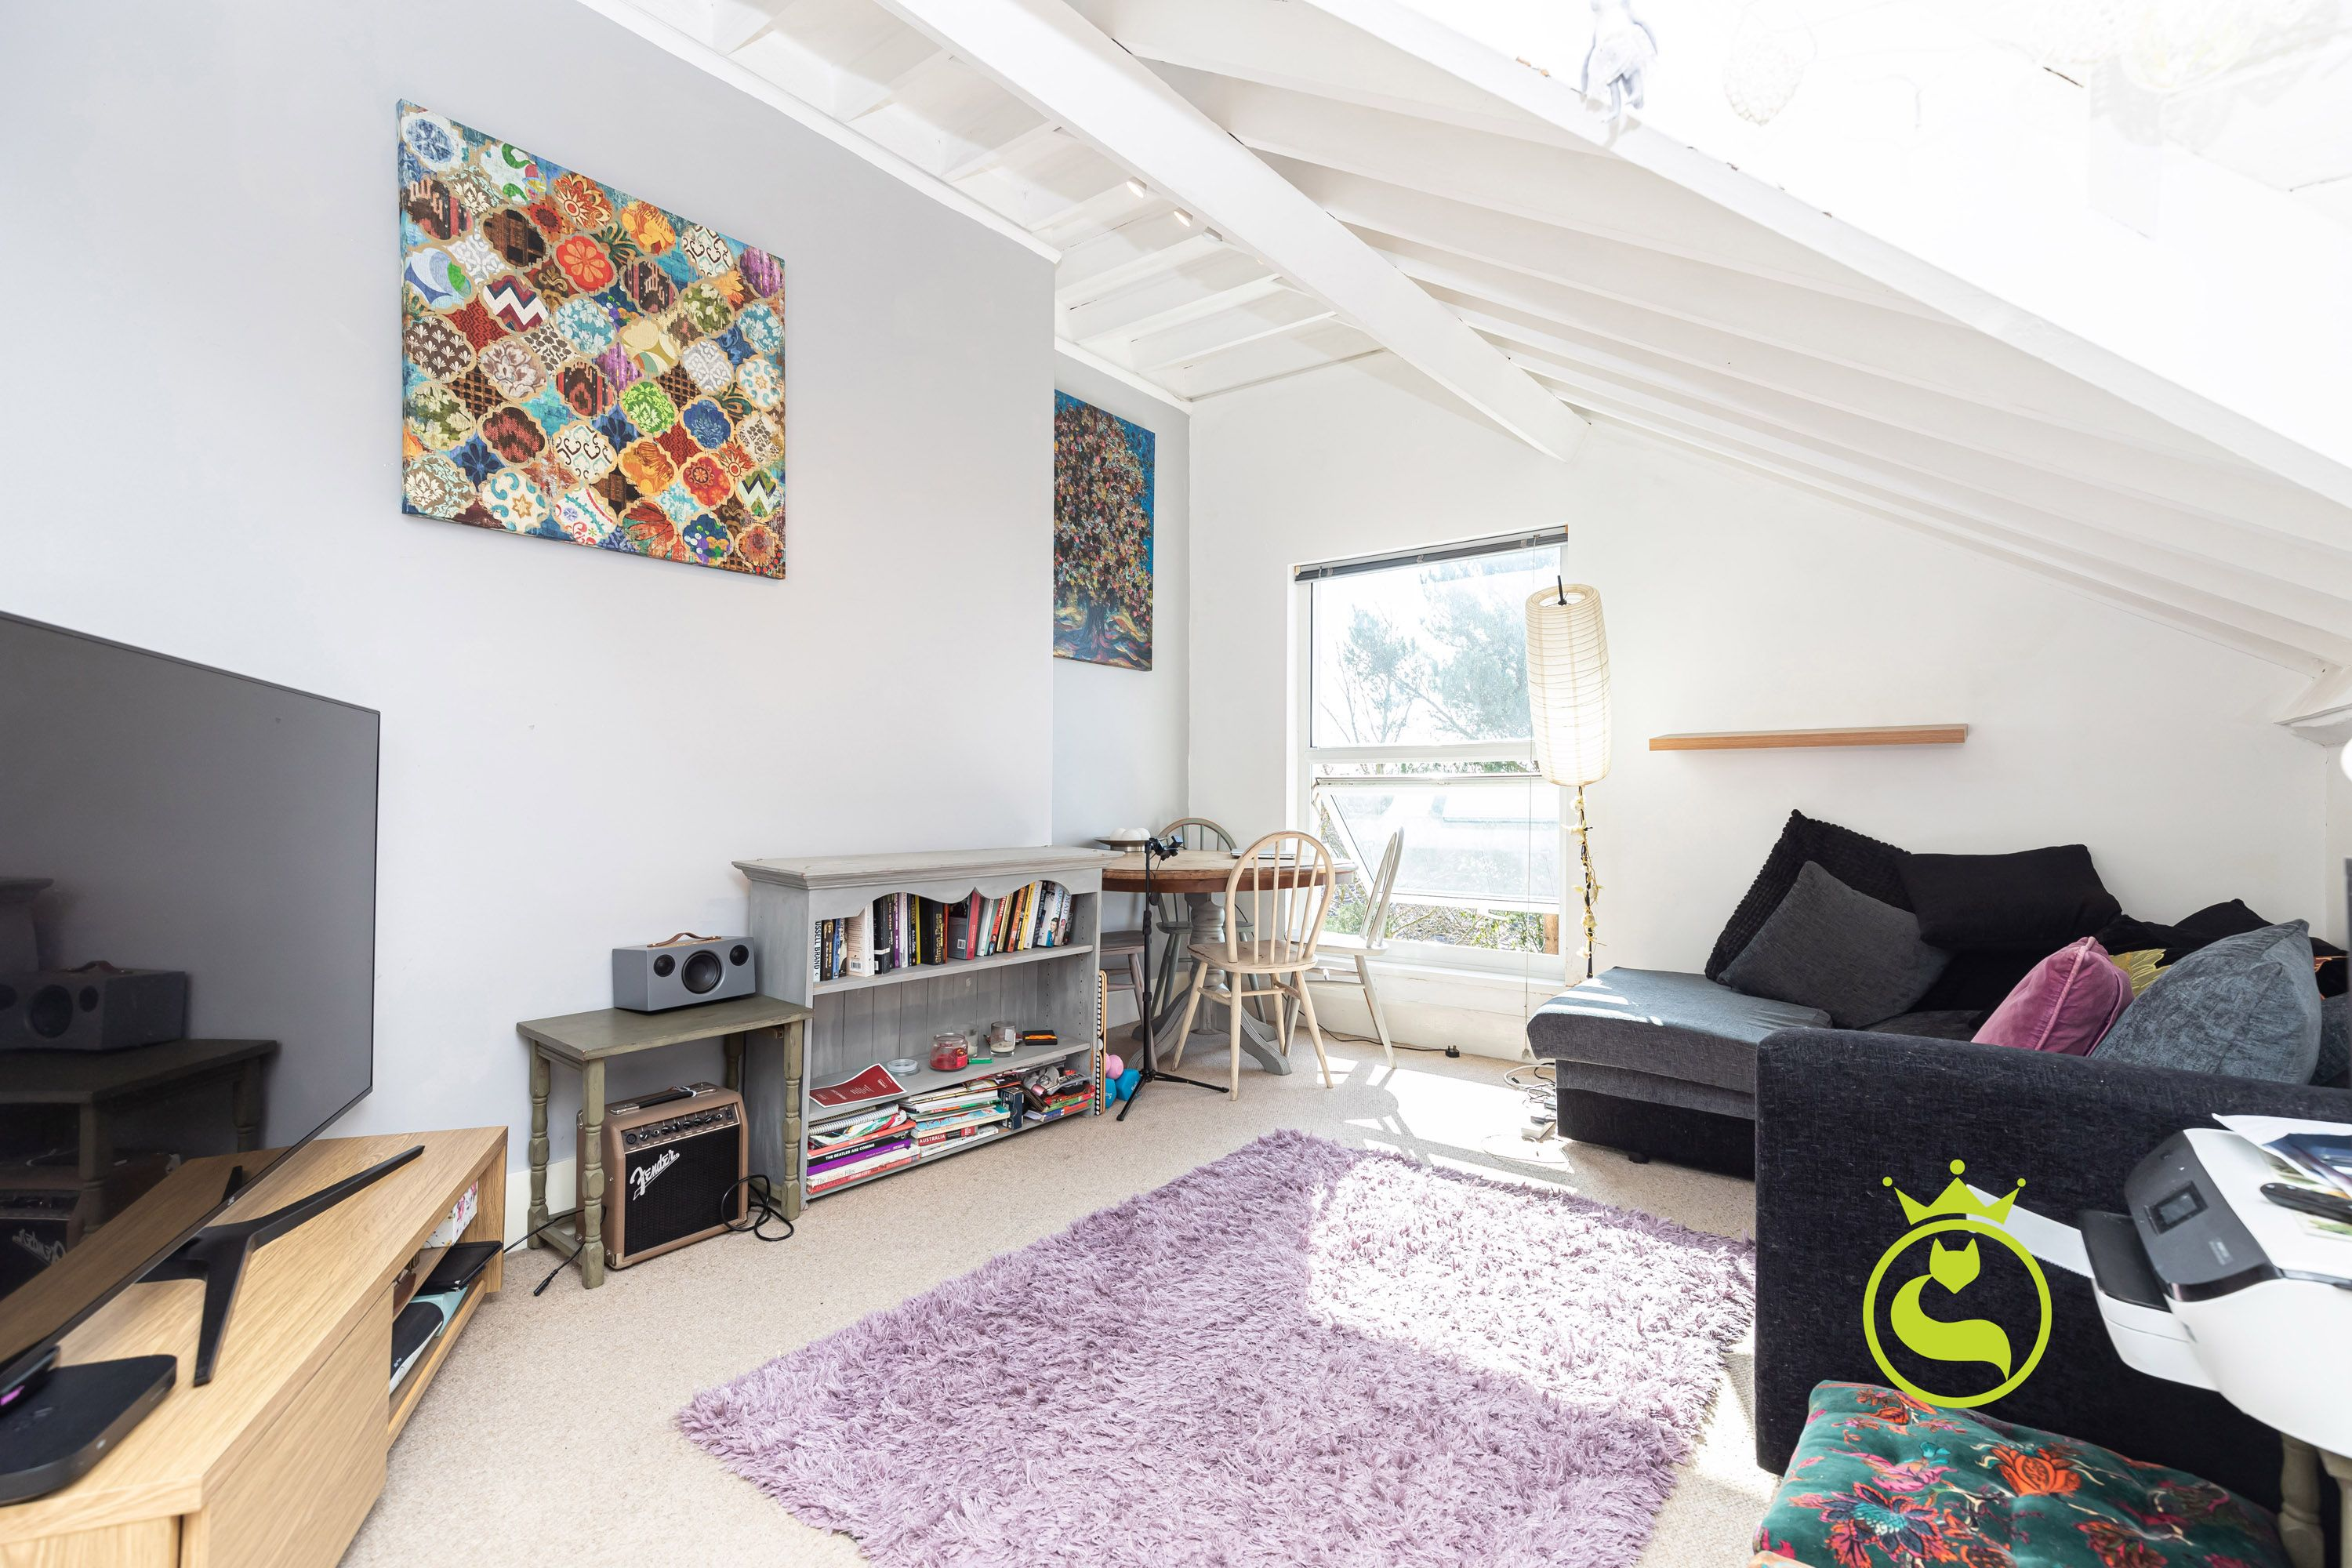 A lovely two bedroom apartment in Ashley Cross. Situated on the top floor of this period conversion with amazing views across Poole Bay to Brownsea Island.